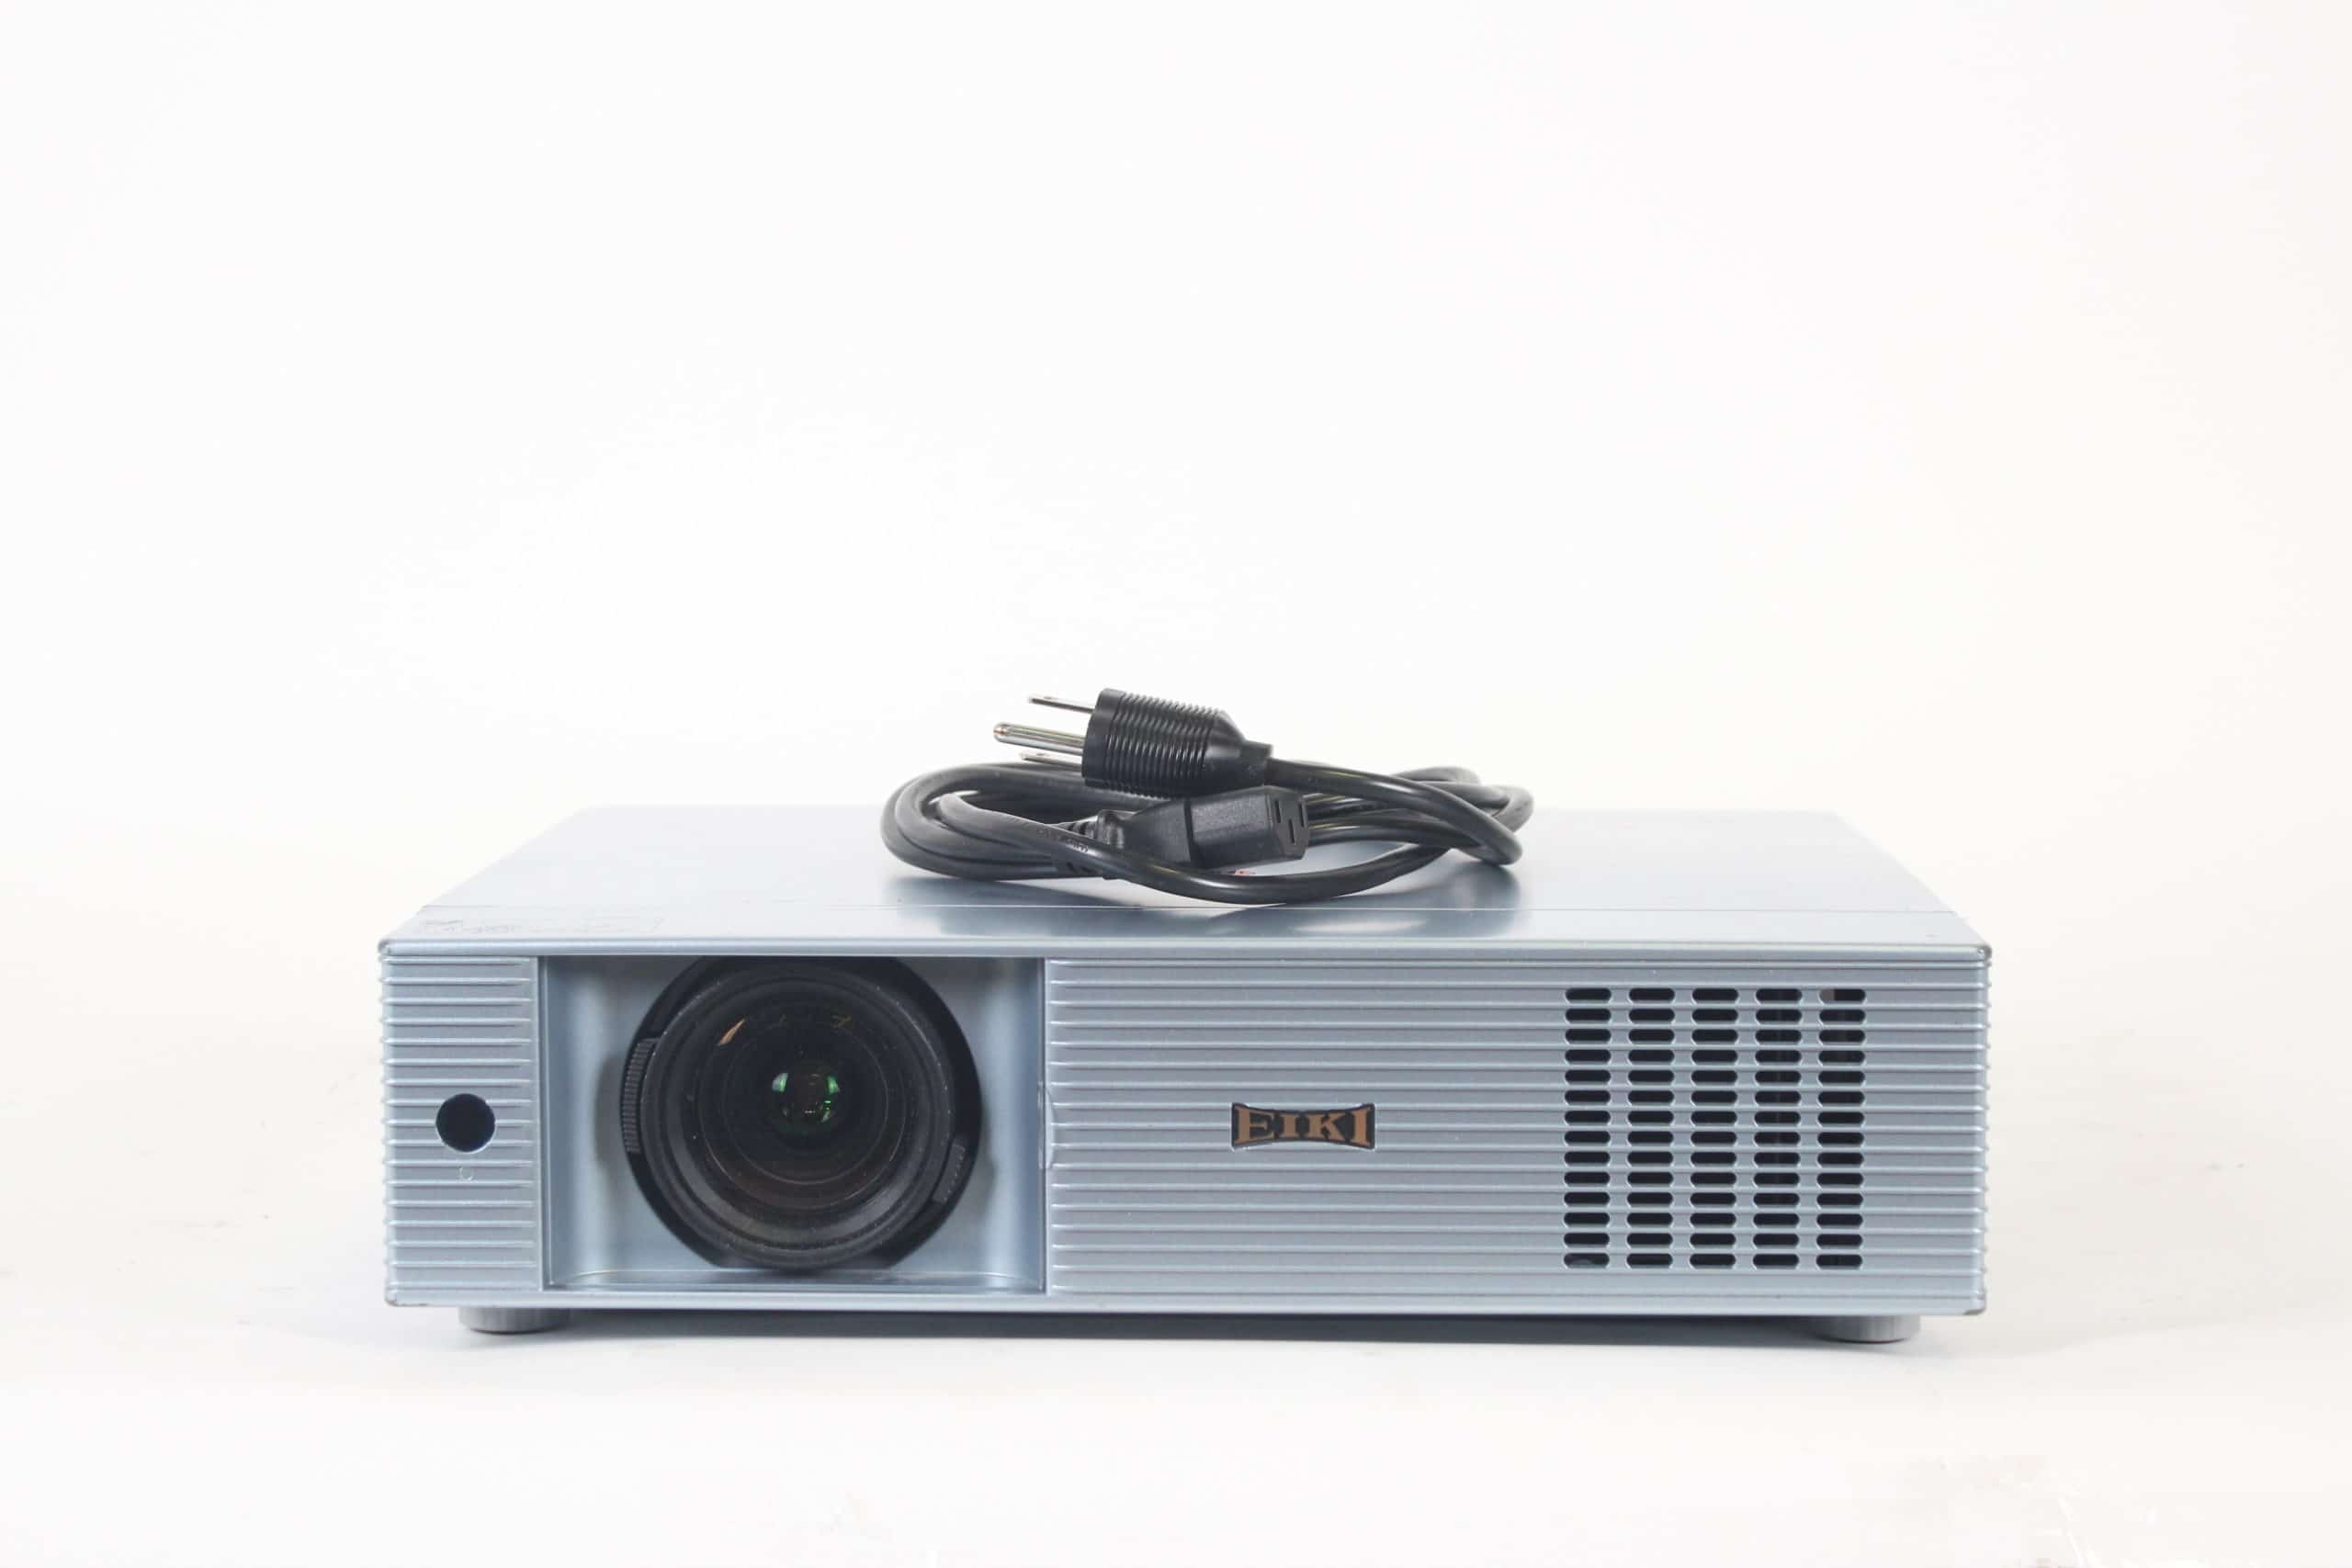 eiki-lc-xb43-xga-4500-lumen-3lcd-conference-room-projector-w-jelco-soft-case-2885-op-hours MAIN